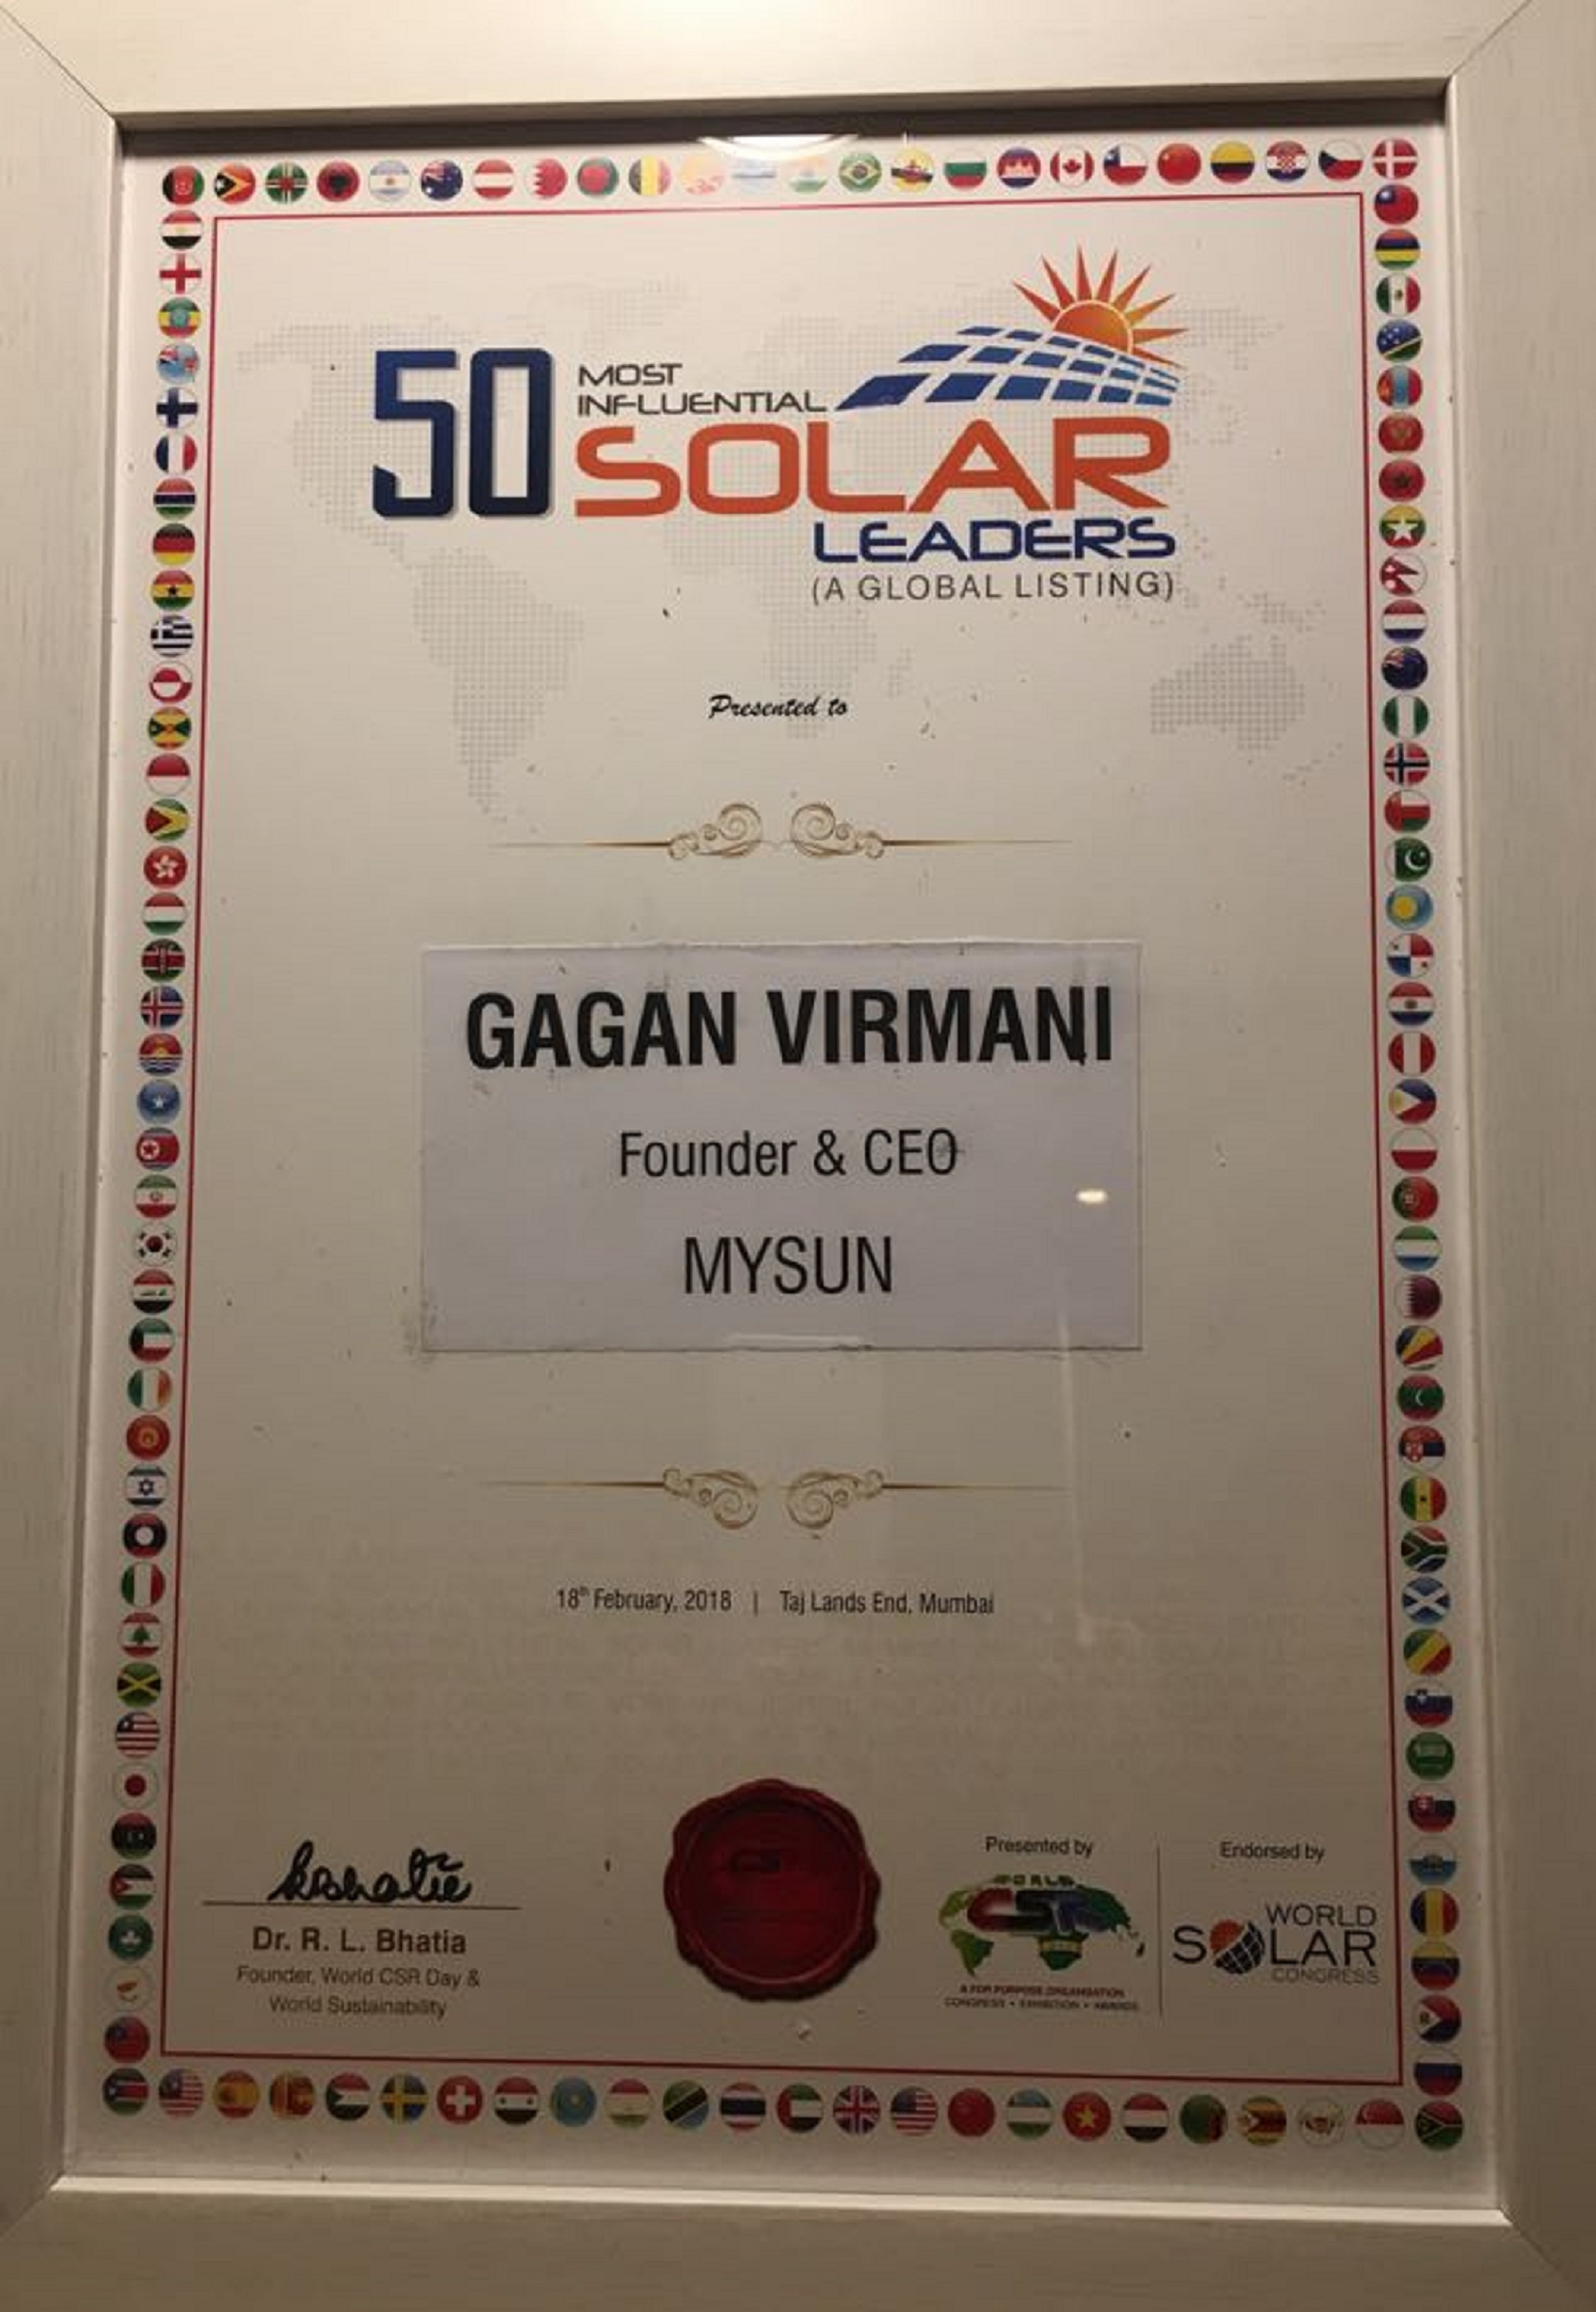 World's '50 Most Influential Solar Leaders'